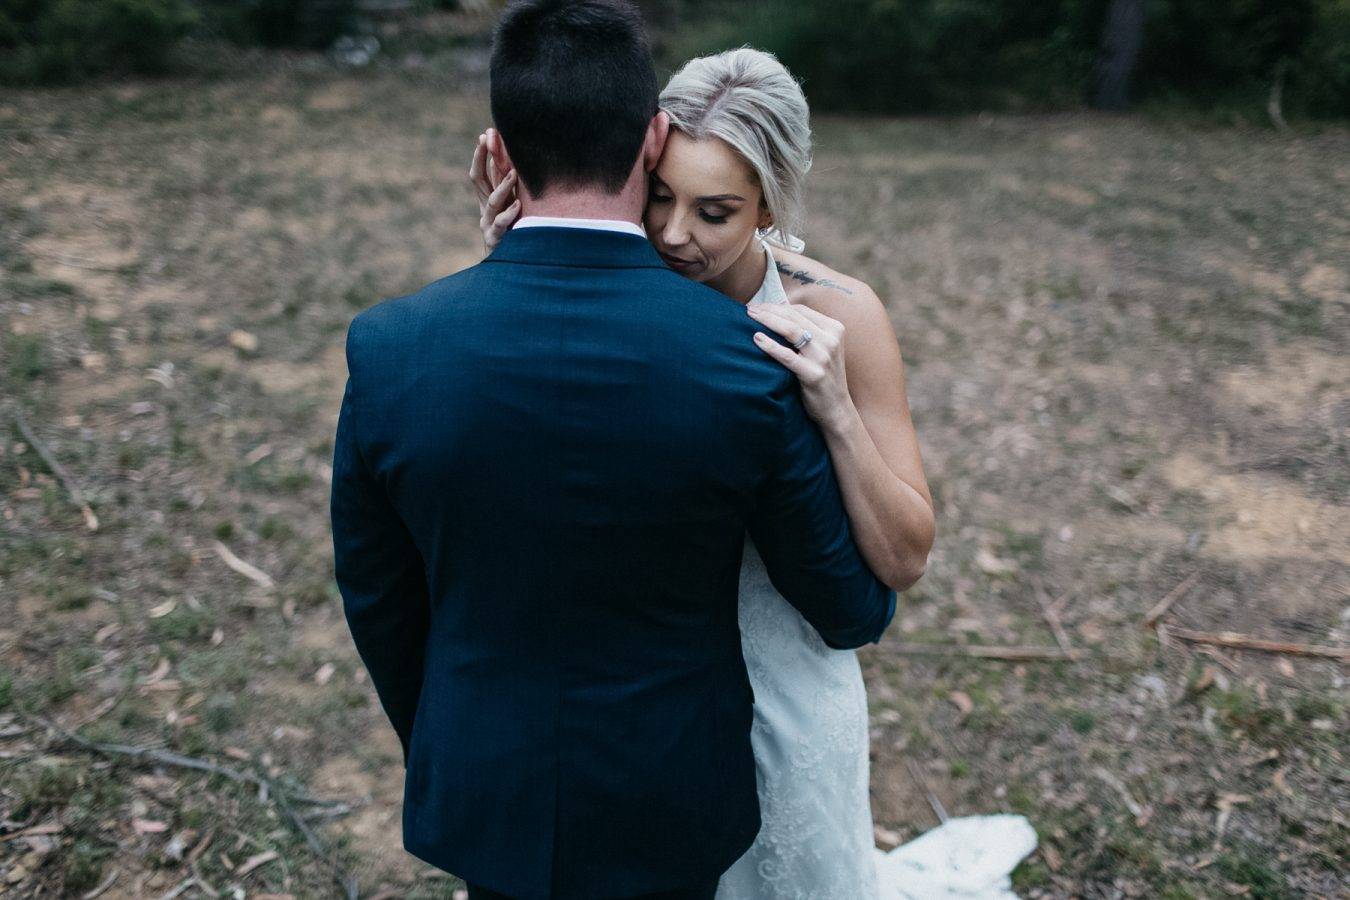 Courtney-Josh-Growwild-Bowral-southernhighlans-Wedding-74